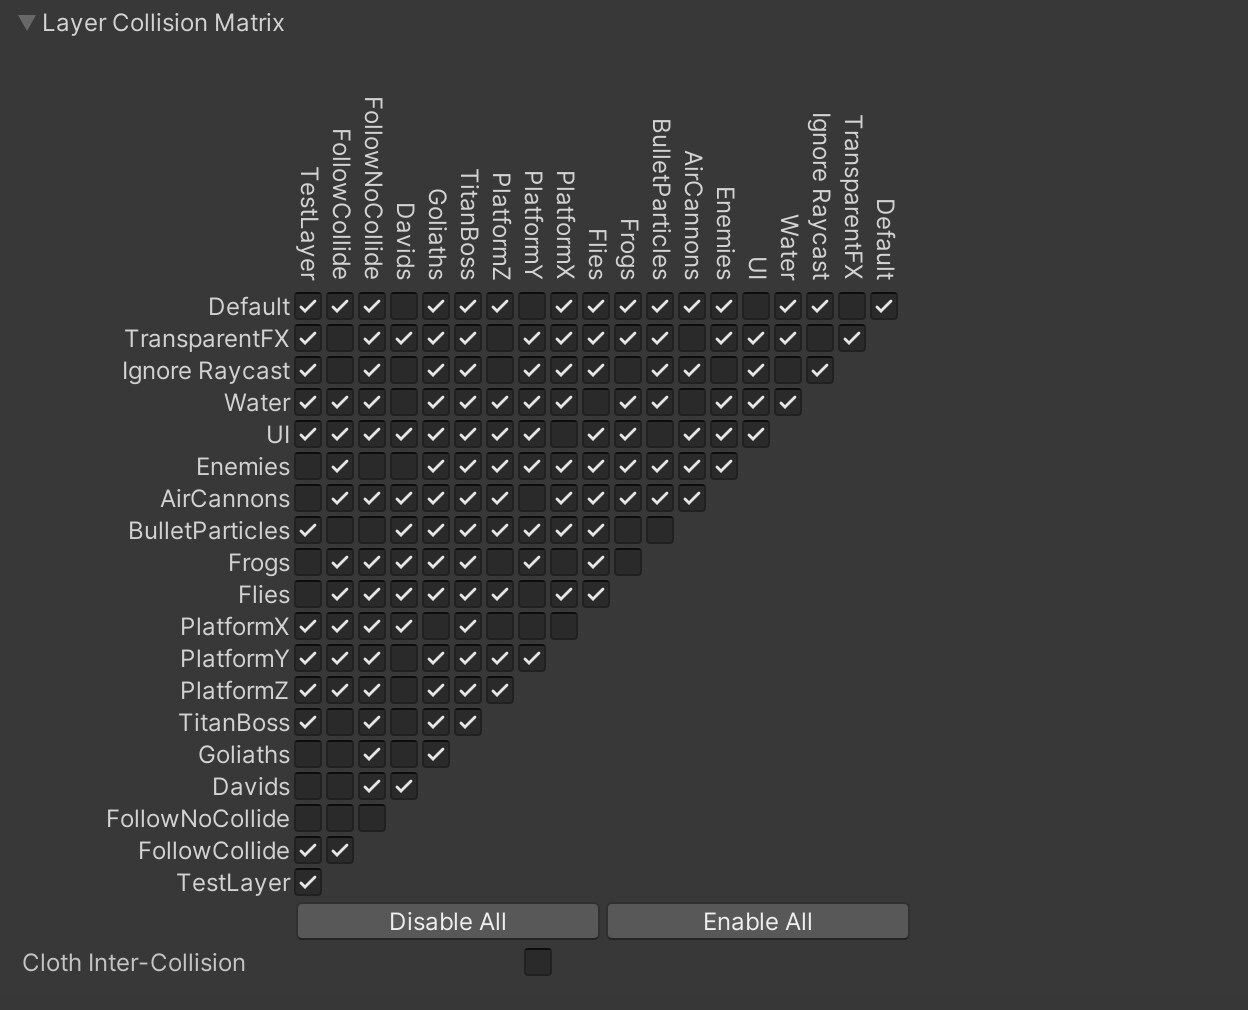 Matrix of the collision layers that have been added to the physics profiler with a grey background and white text